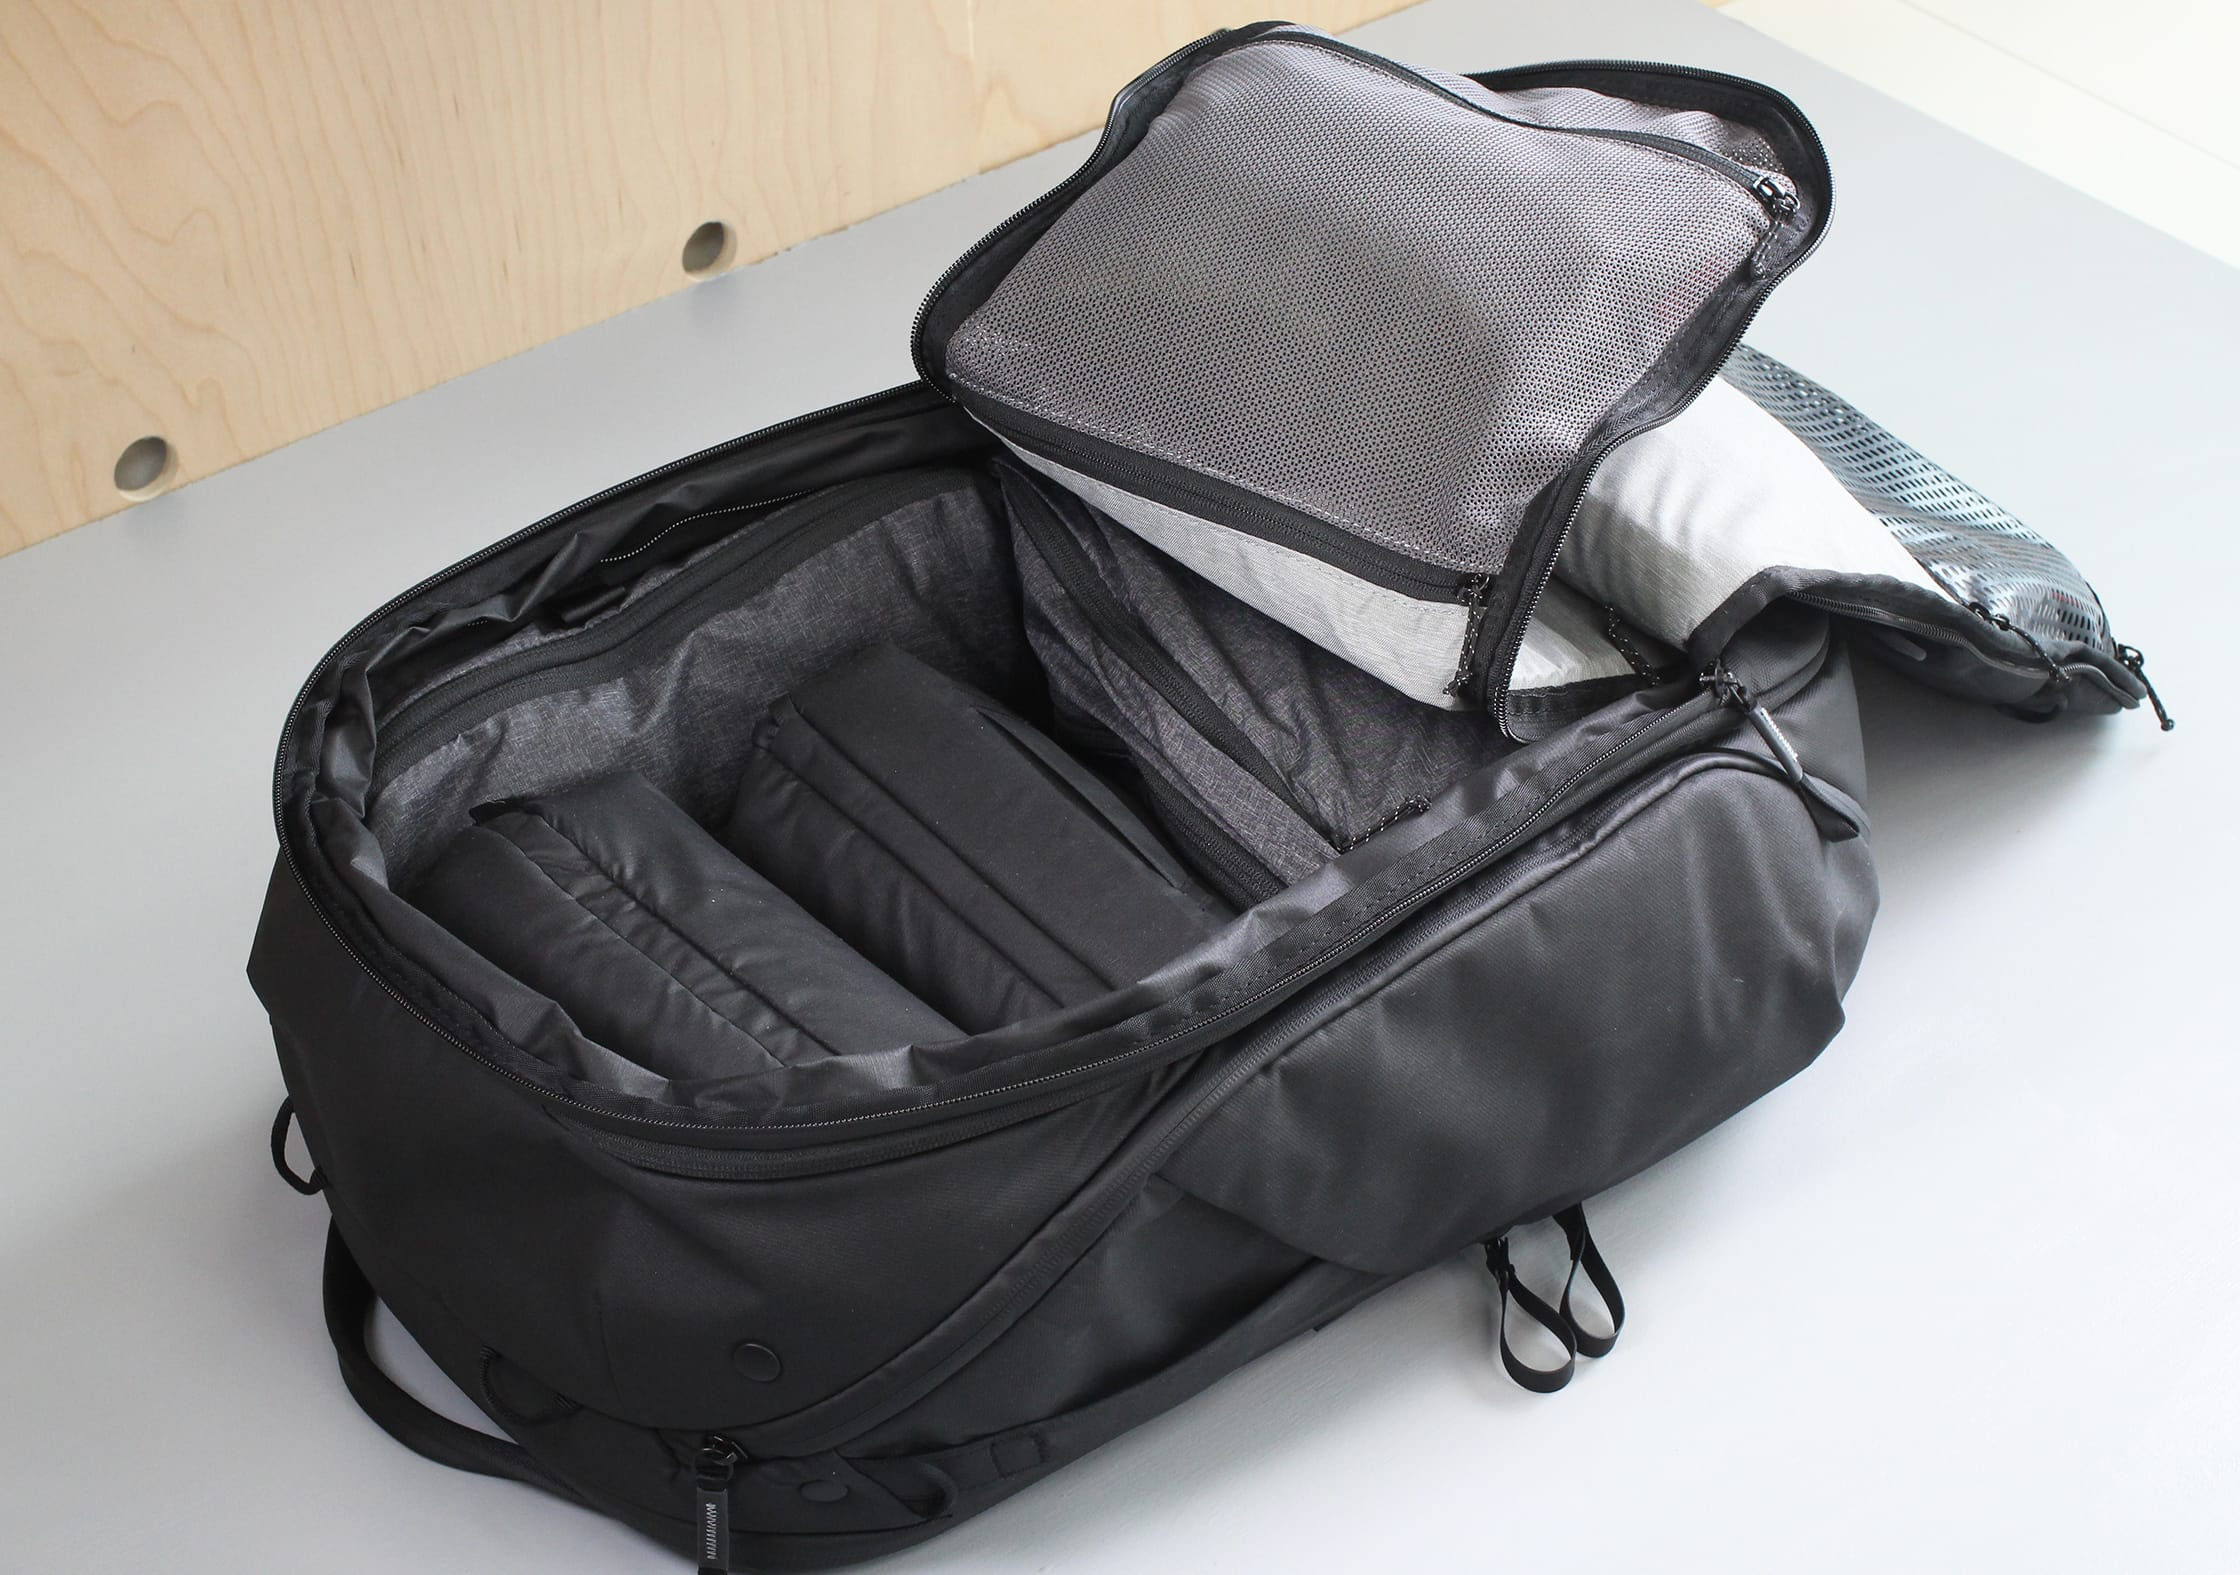 Peak Design Travel Backpack Main Compartment + Divider